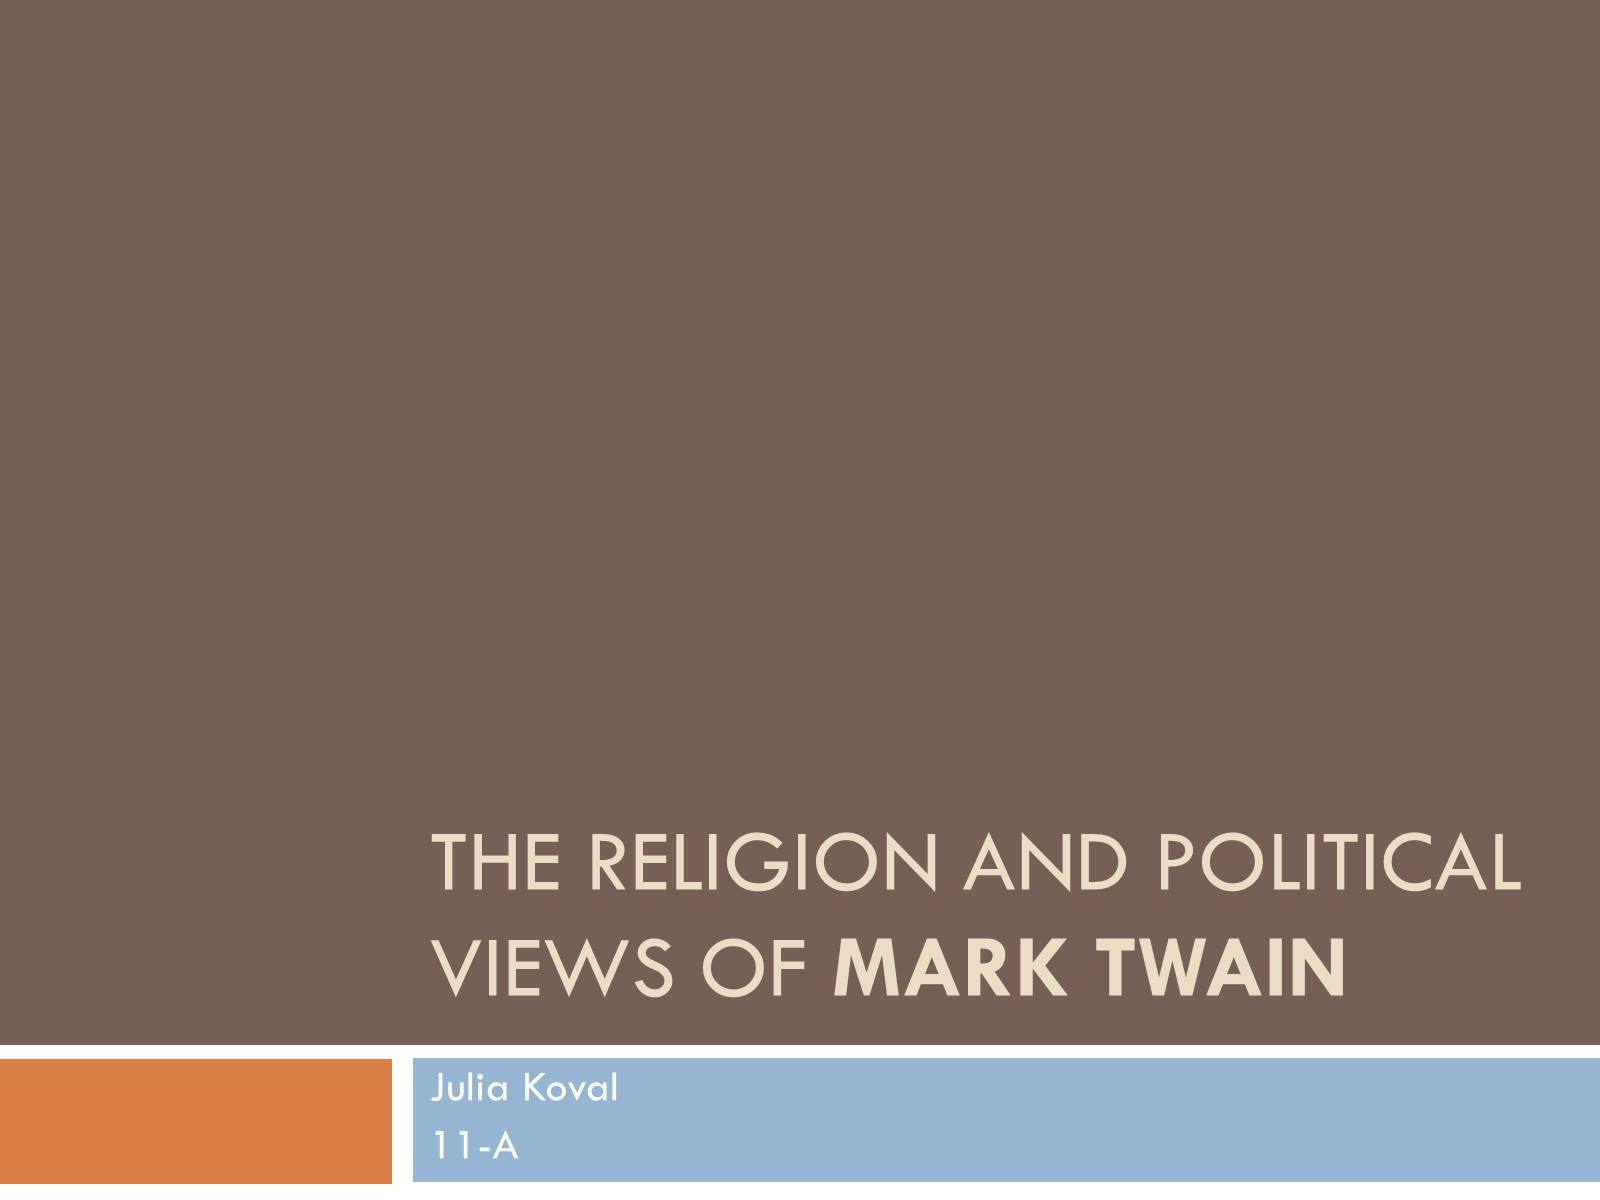 Презентація на тему «The religion and political views of Mark Twain»